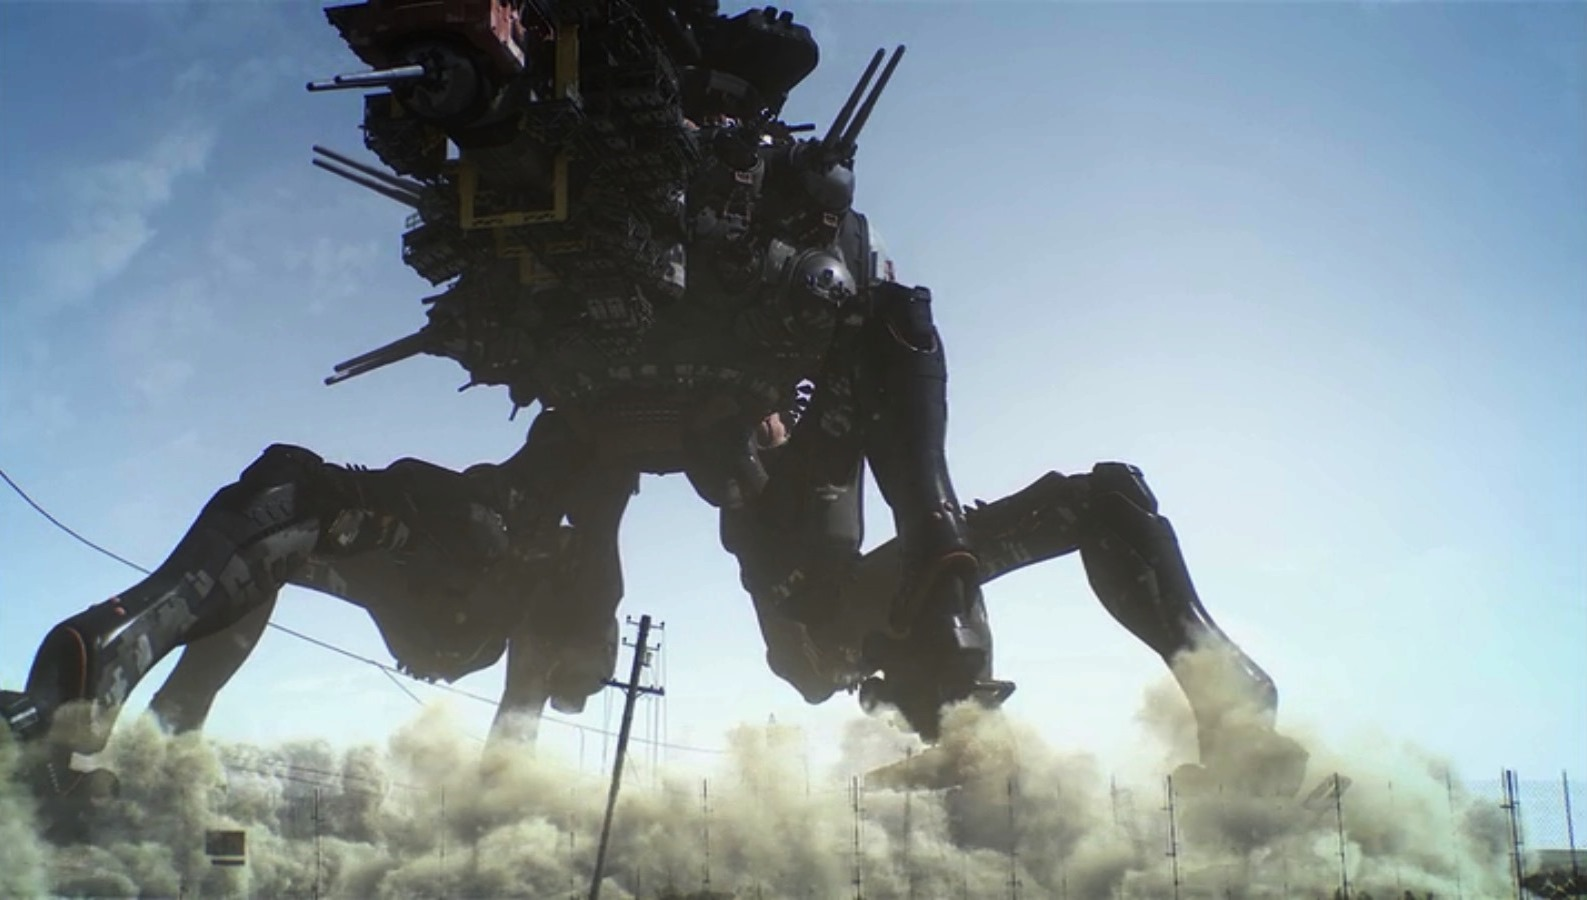 The massive battle machine in Appleseed Alpha (2014)